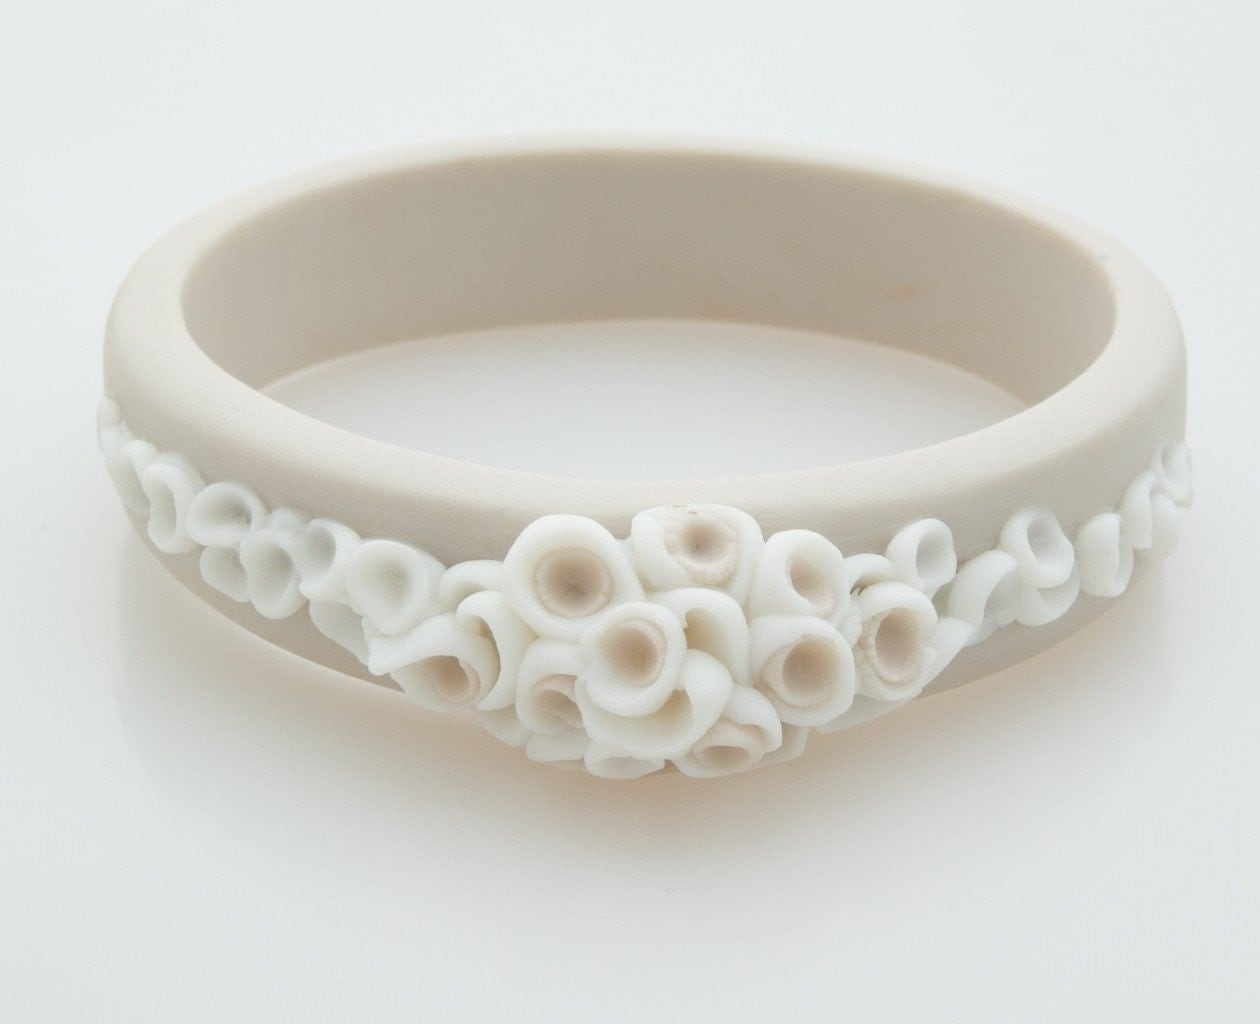 Bracelet Bangle , La Angosta Porcelain Bracelet , Ecru and White